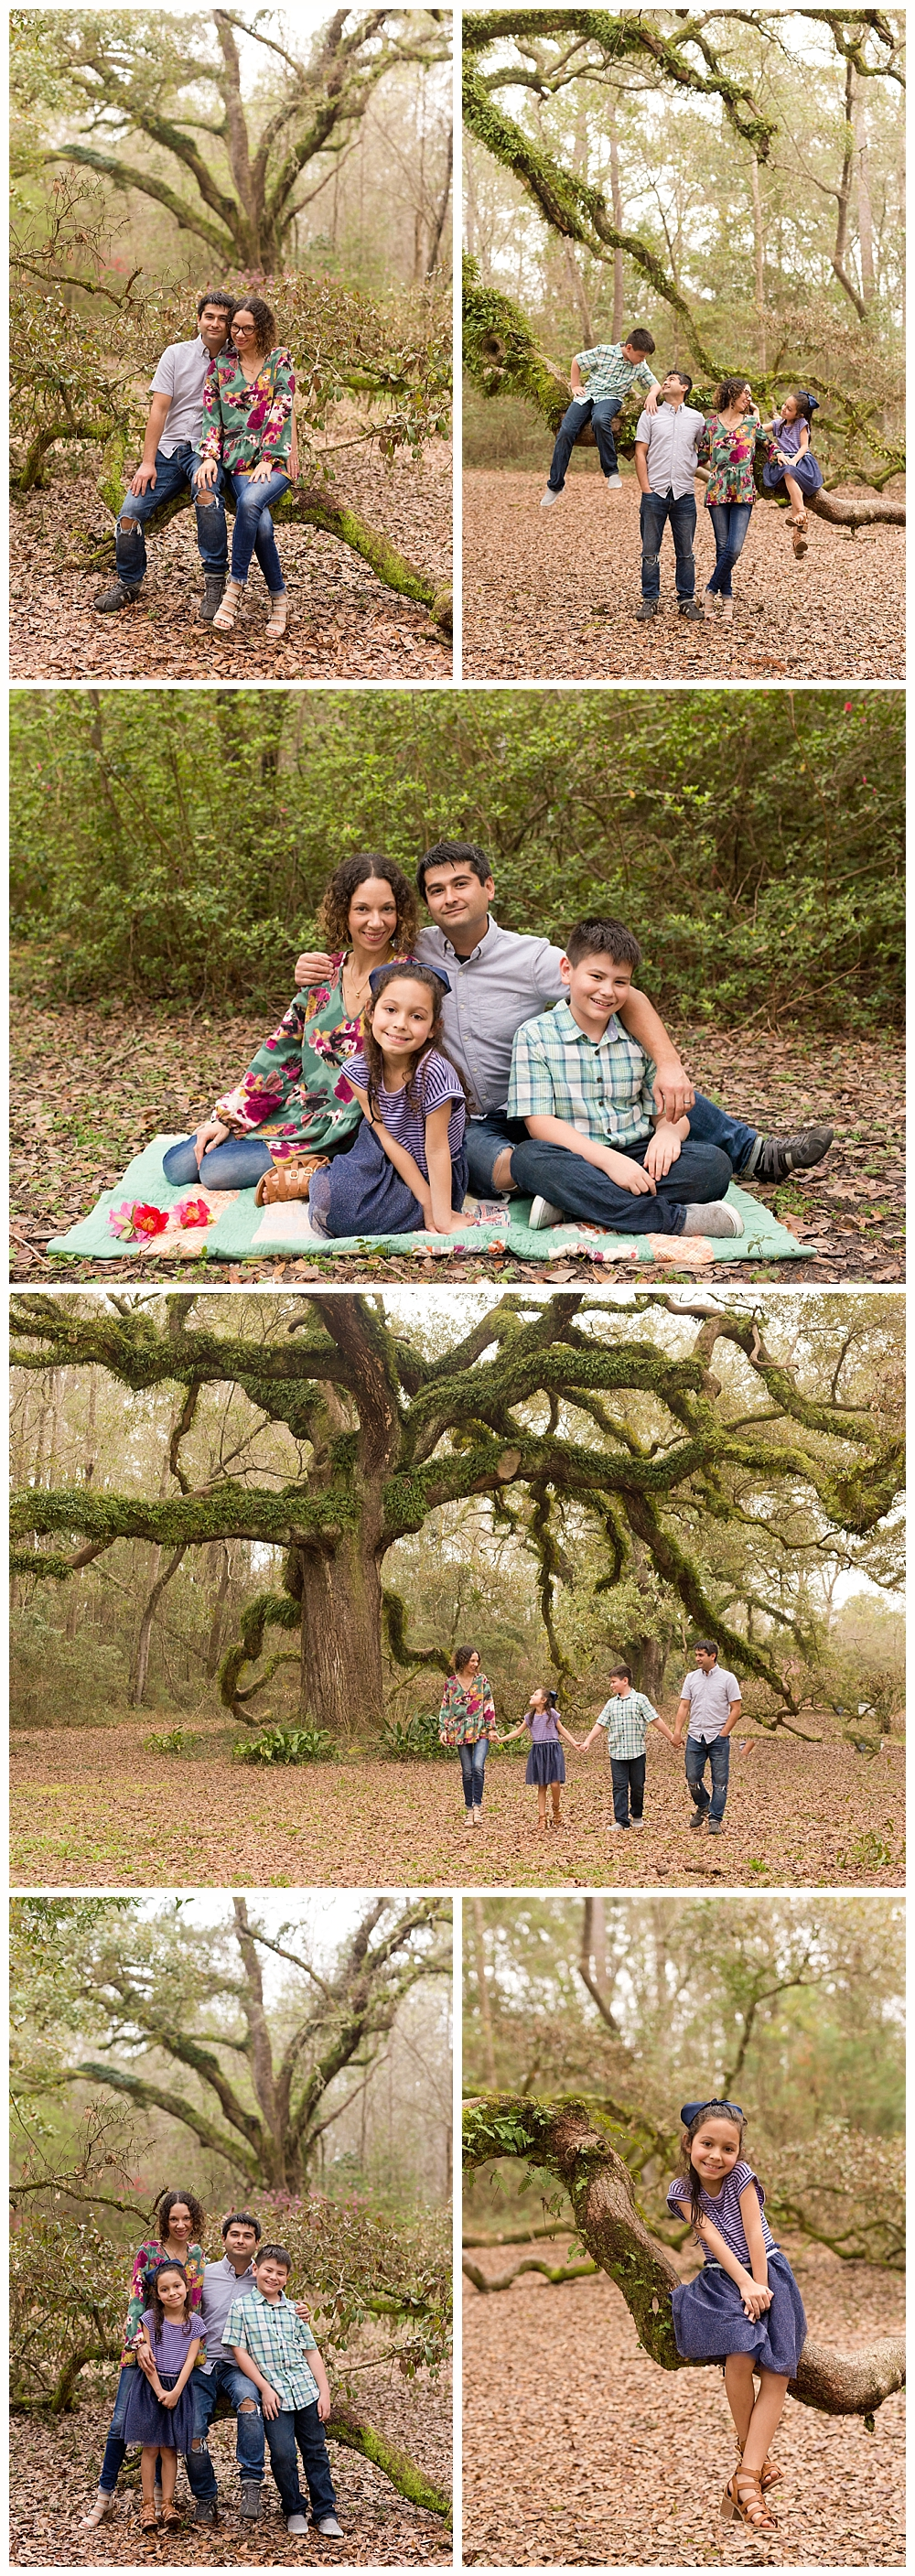 Ocean Springs family pictures in natural setting with live oak trees